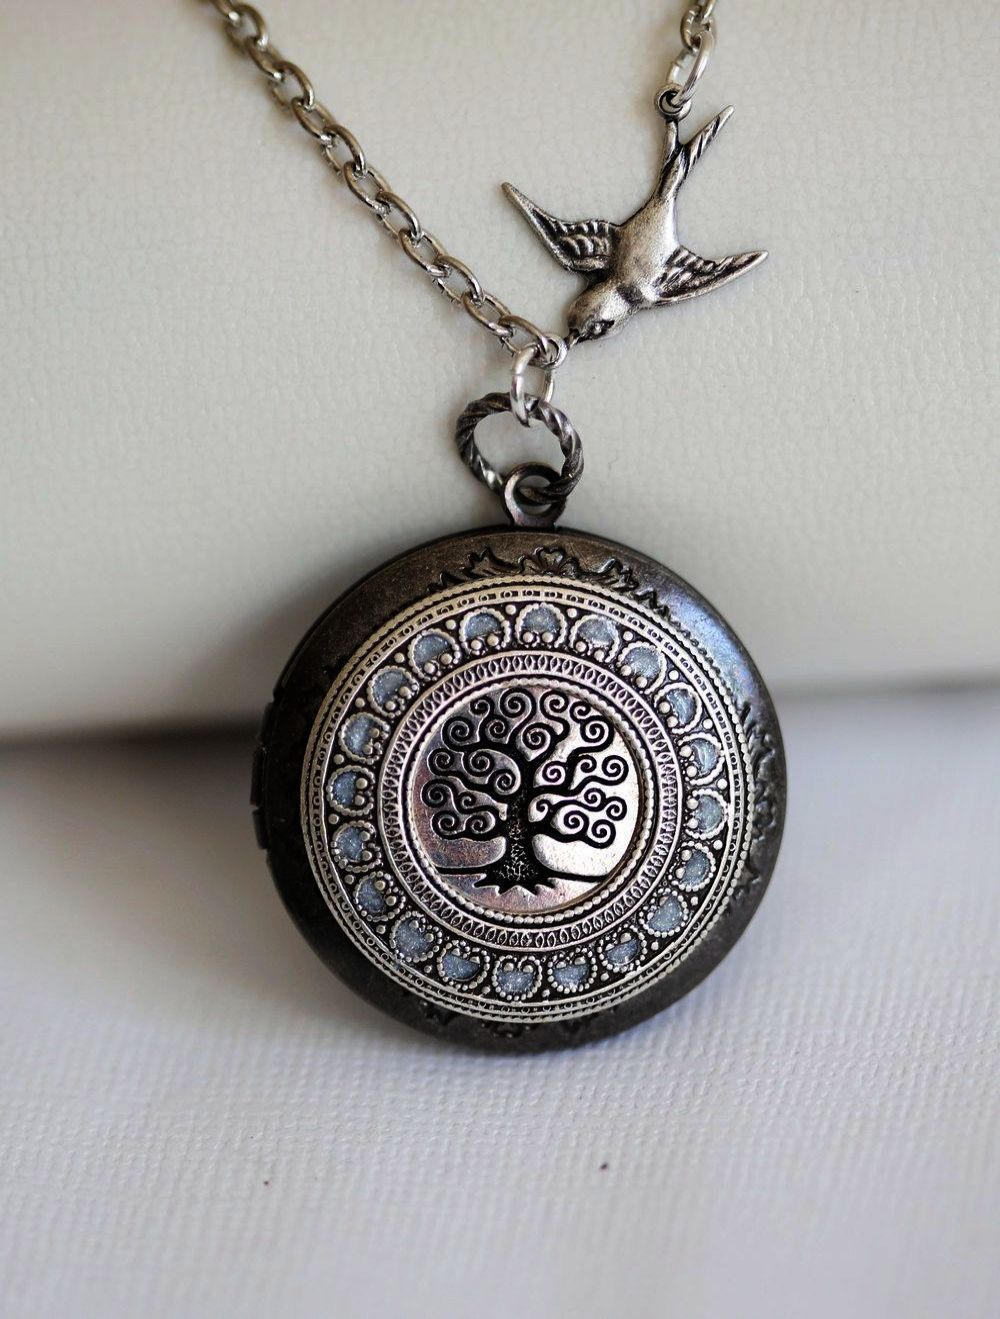 Vintage oval locket necklace locket necklace locket necklace